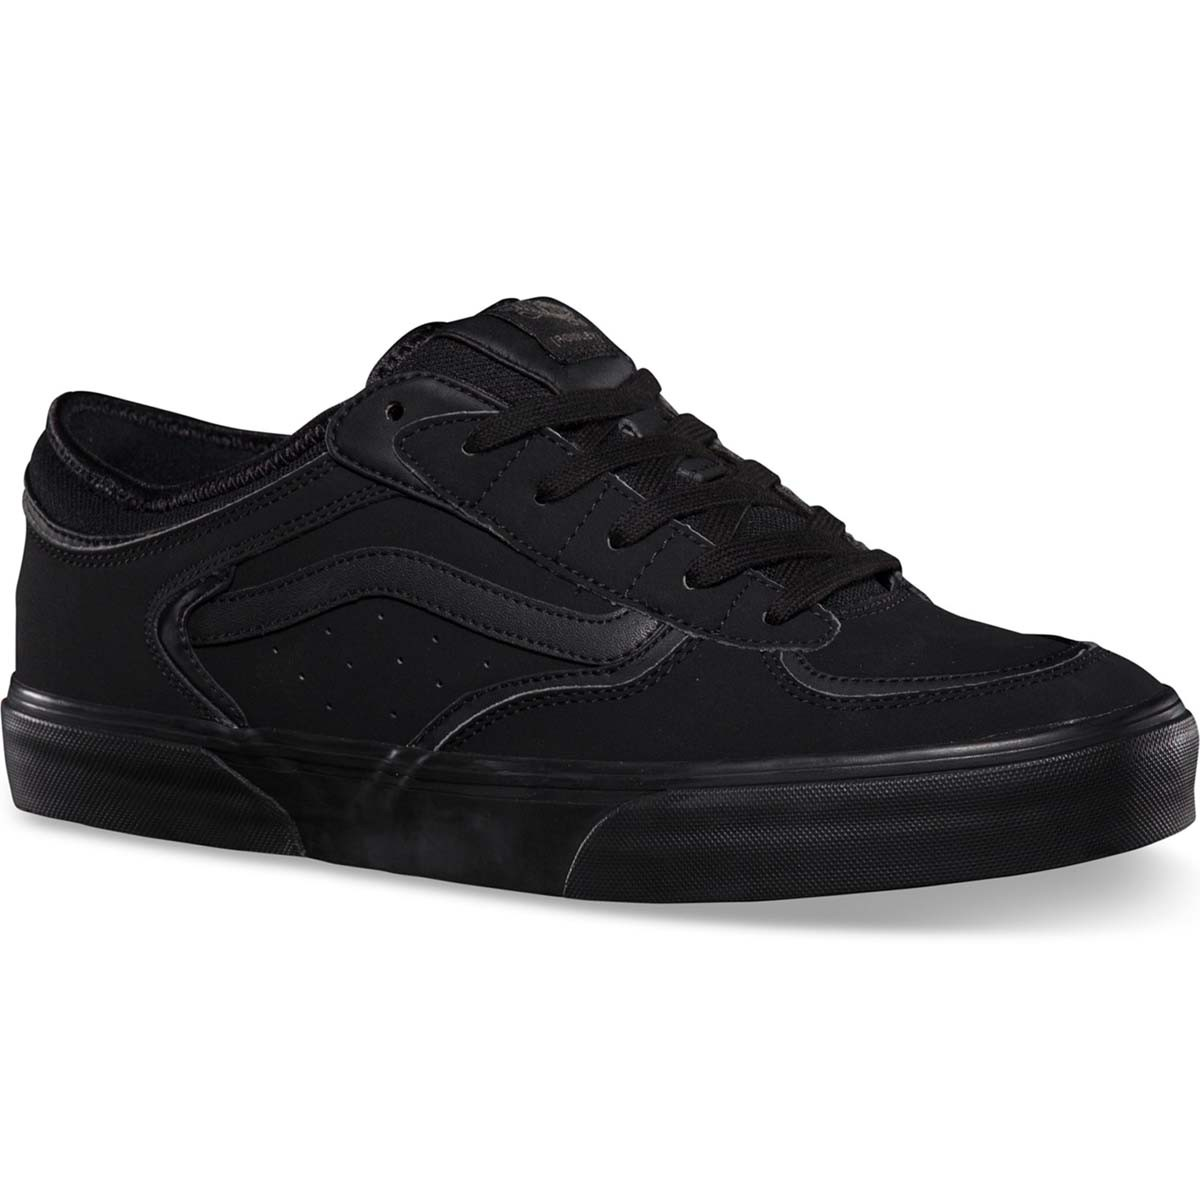 Vans Geoff Rowley Pro Shoes - Blackout 12.0